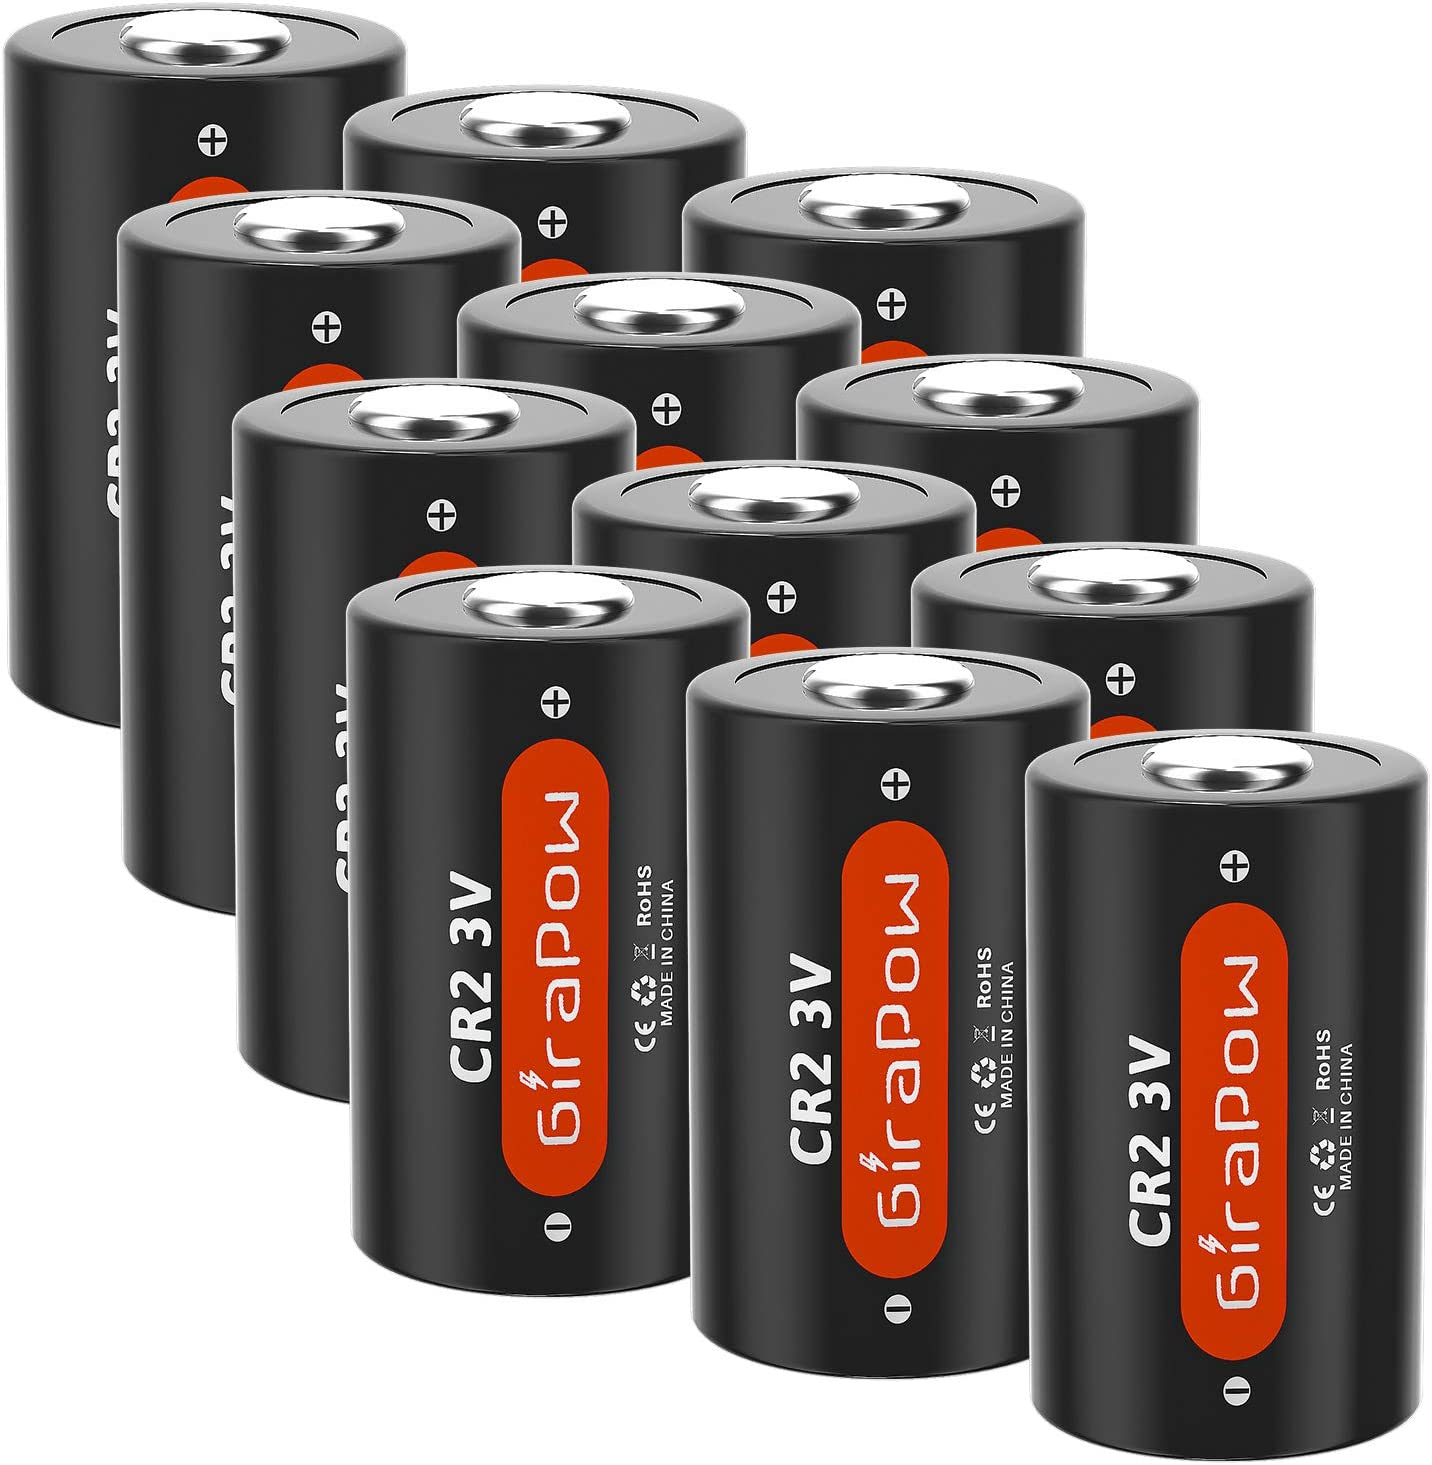 Girapow CR2 3V Lithium Battery, 3 Volt 800mAh Battery High Performance for Golf Rangefinder, Mini 25 50, Flashlight, Calculator, Alarm Systems, 12-Count